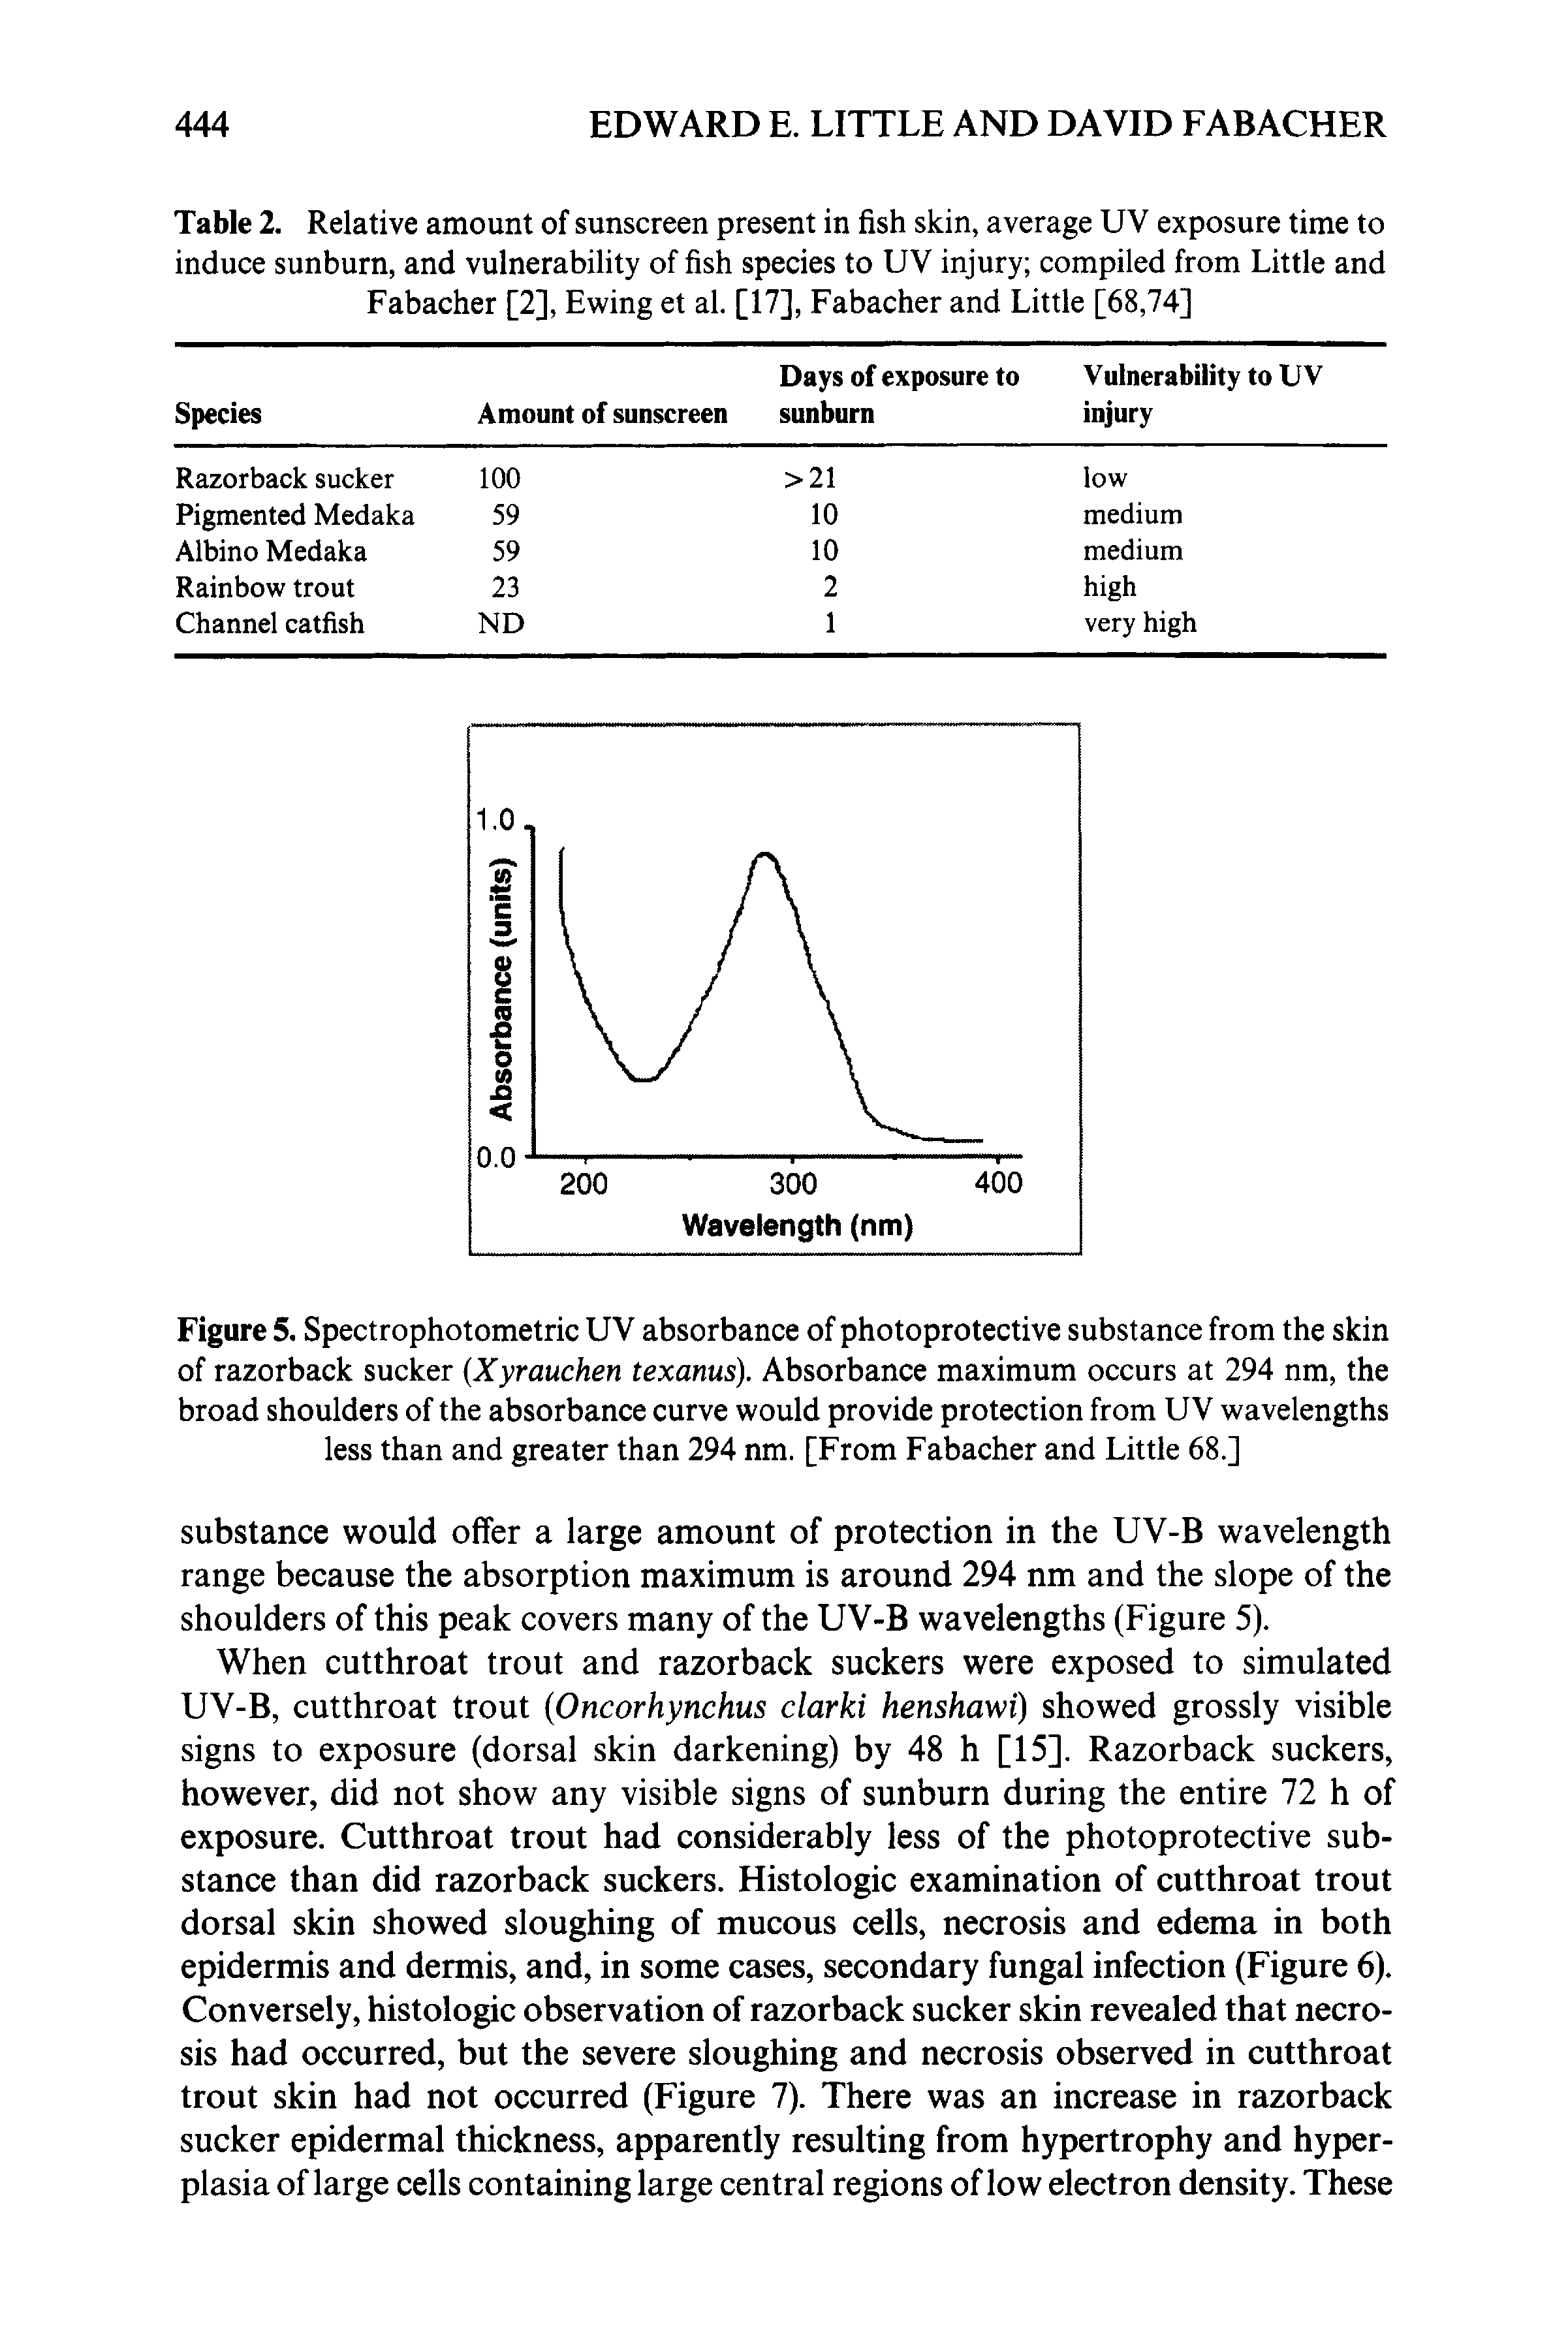 Figure 5. Spectrophotometric UV absorbance of photoprotective substance from the skin of razorback sucker Xyrauchen texanus). Absorbance maximum occurs at 294 nm, the broad shoulders of the absorbance curve would provide protection from UV wavelengths less than and greater than 294 nm. [From Fabacher and Little 68.]...